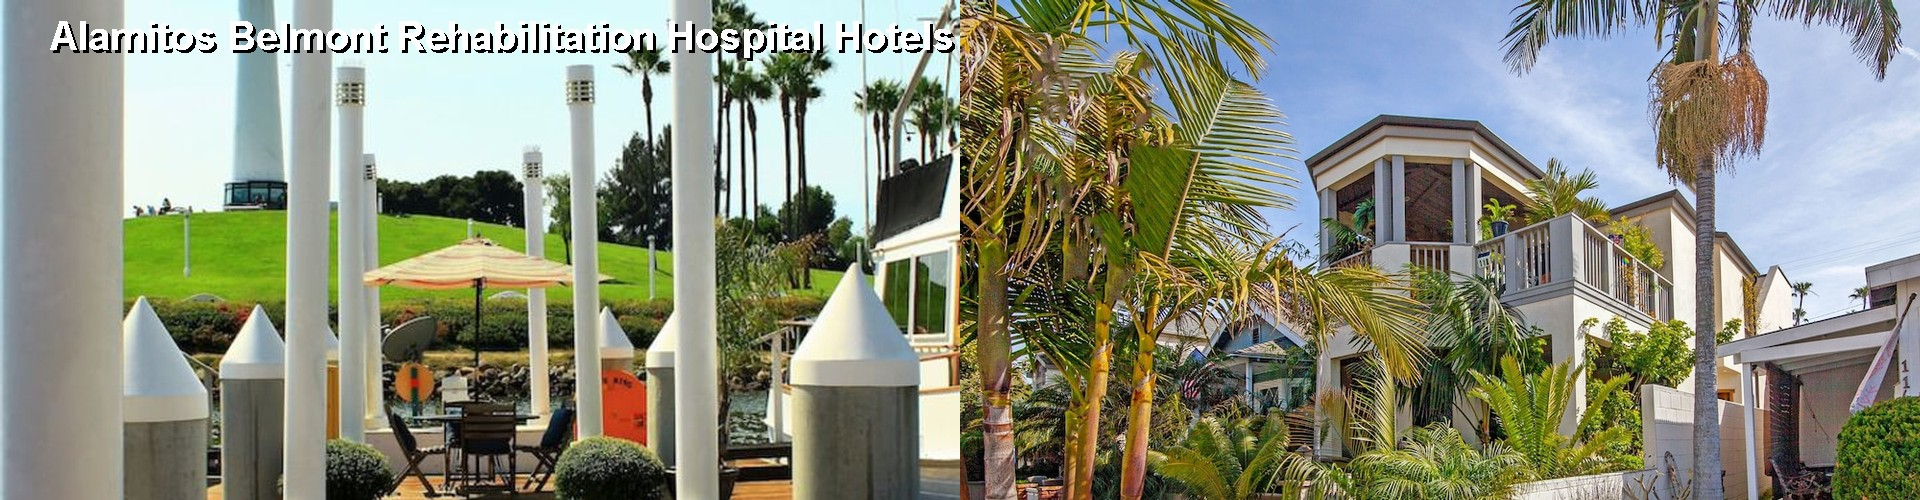 3 Best Hotels near Alamitos Belmont Rehabilitation Hospital